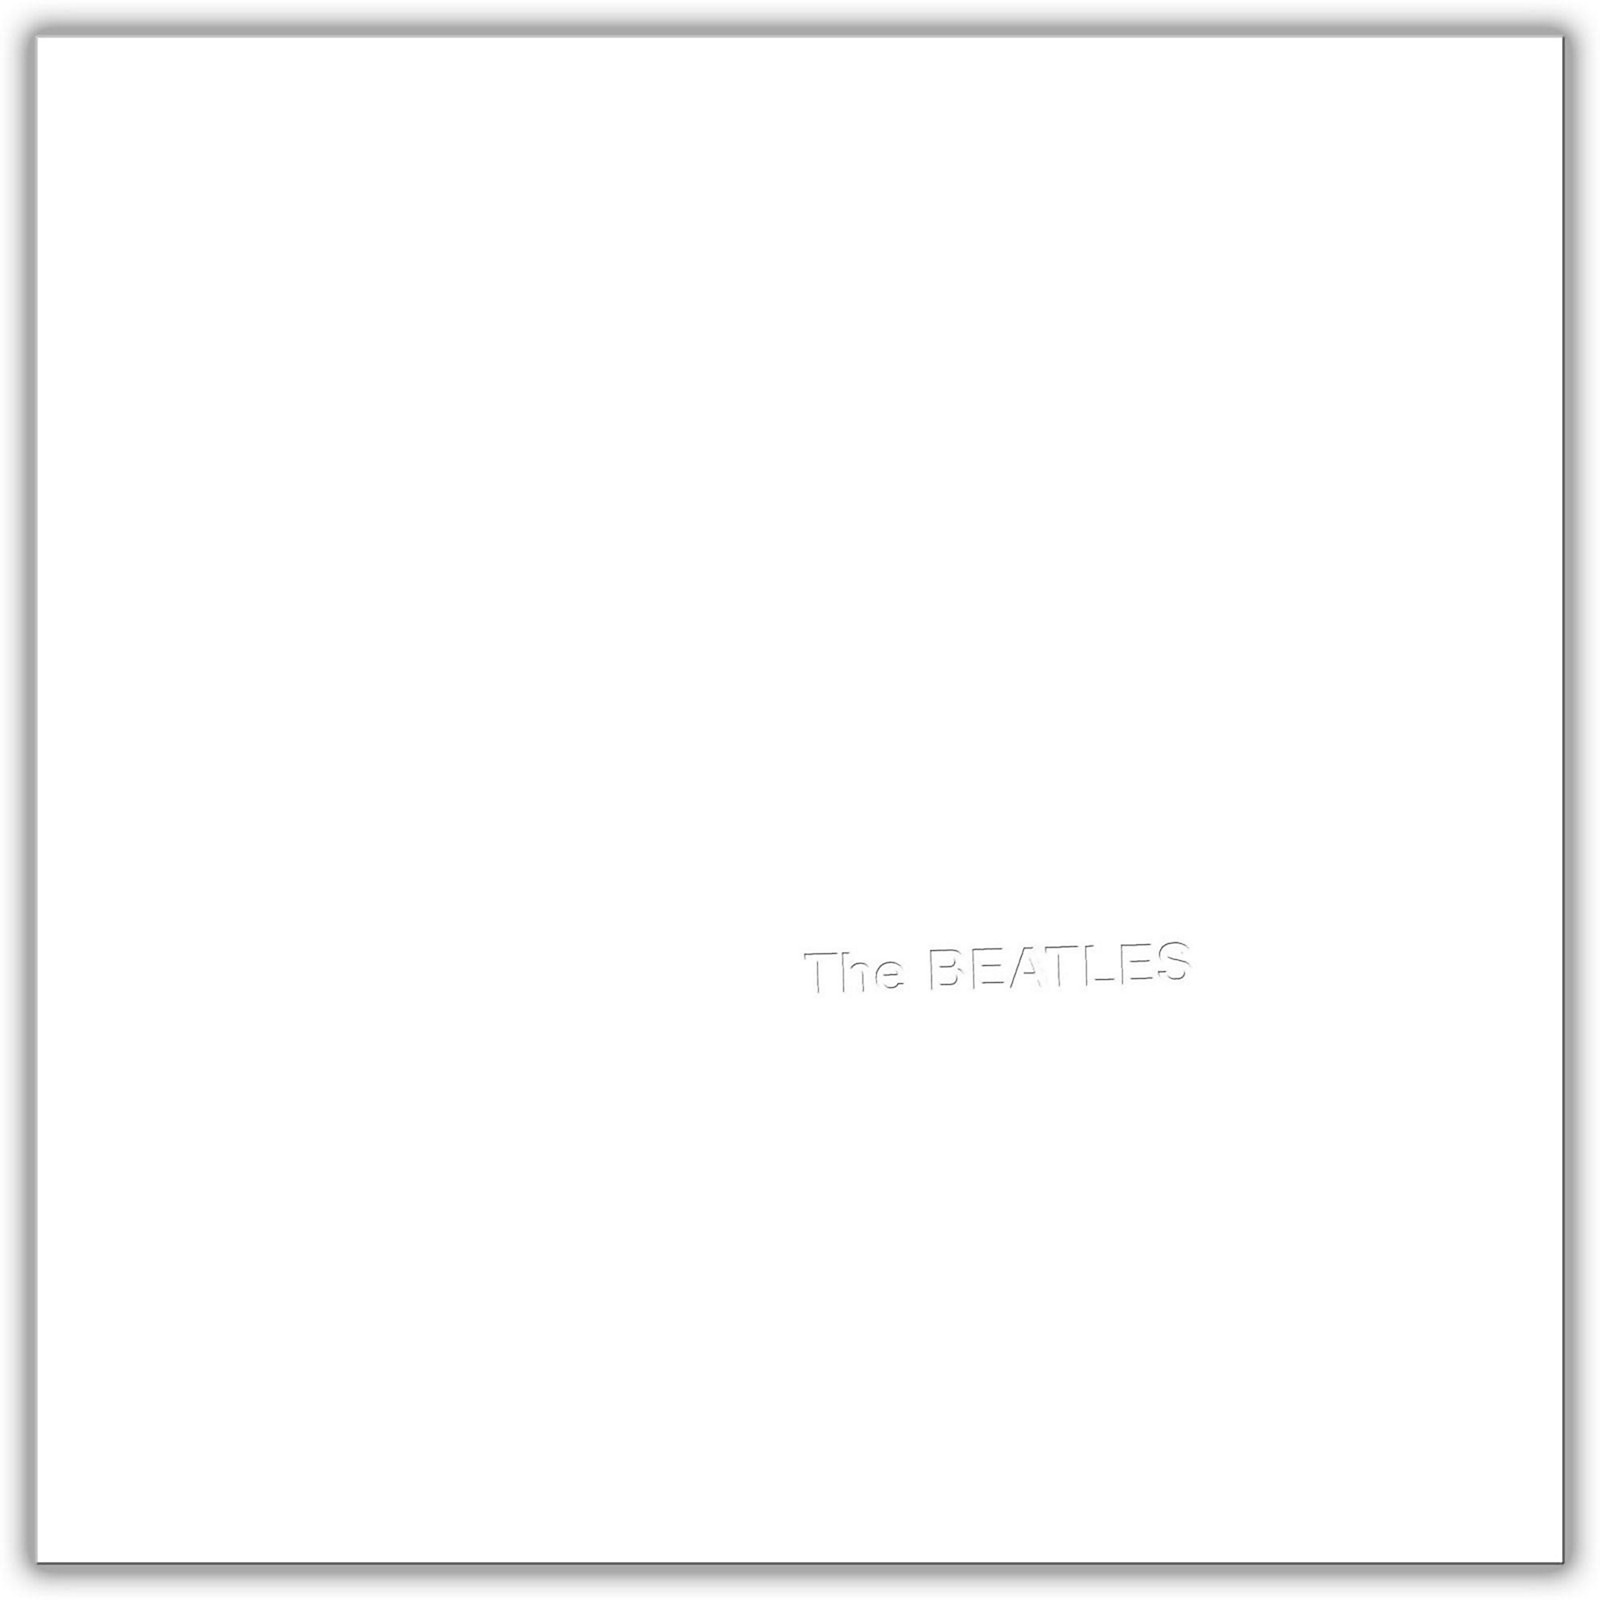 Universal Music Group The Beatles - The Beatles (White Album) Vinyl LP